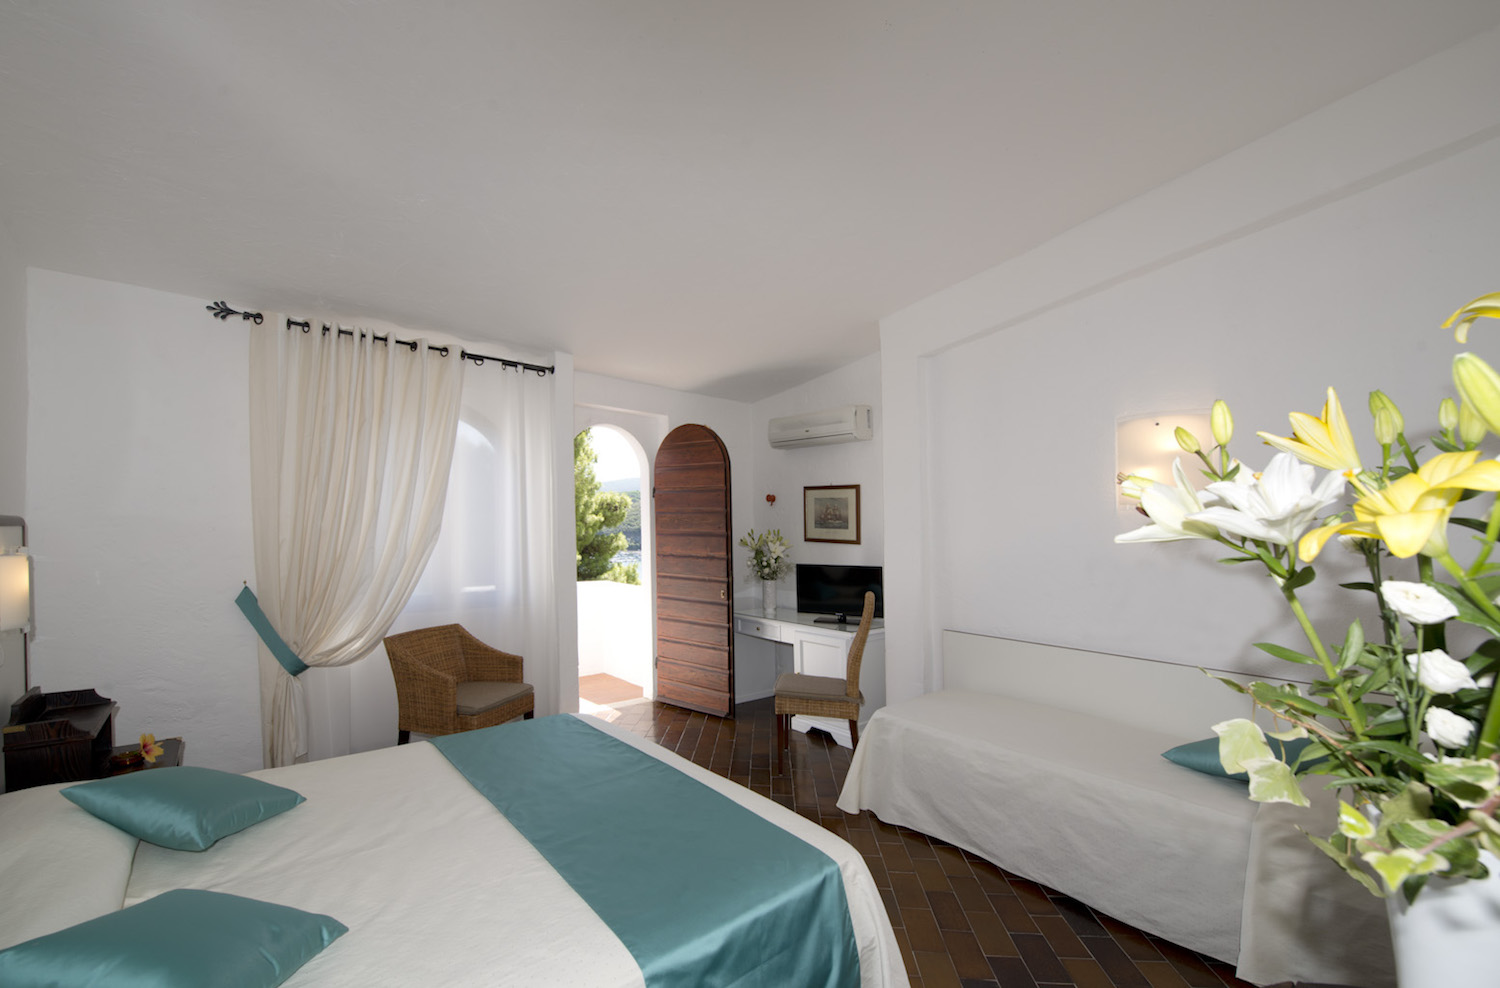 Room with a king size bed, a single bed, sofa, chairs, TV and terrace